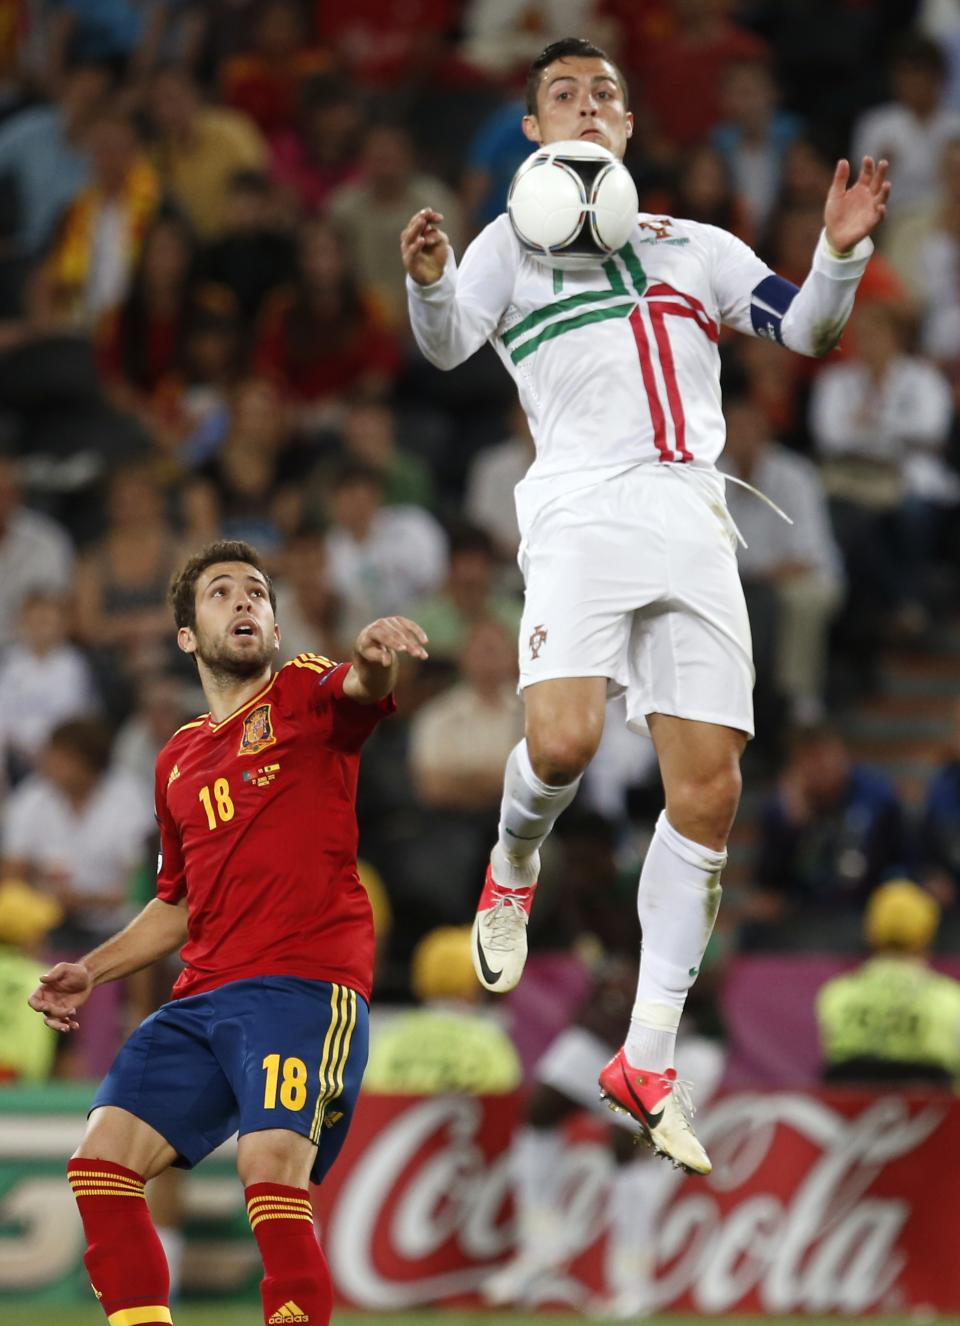 Portugal's Cristiano Ronaldo outleaps Spain's Jordi Alba for a ball during the Euro 2012 soccer championship semifinal match between Spain and Portugal in Donetsk, Ukraine, Wednesday, June 27, 2012. (AP Photo/Armando Franca)